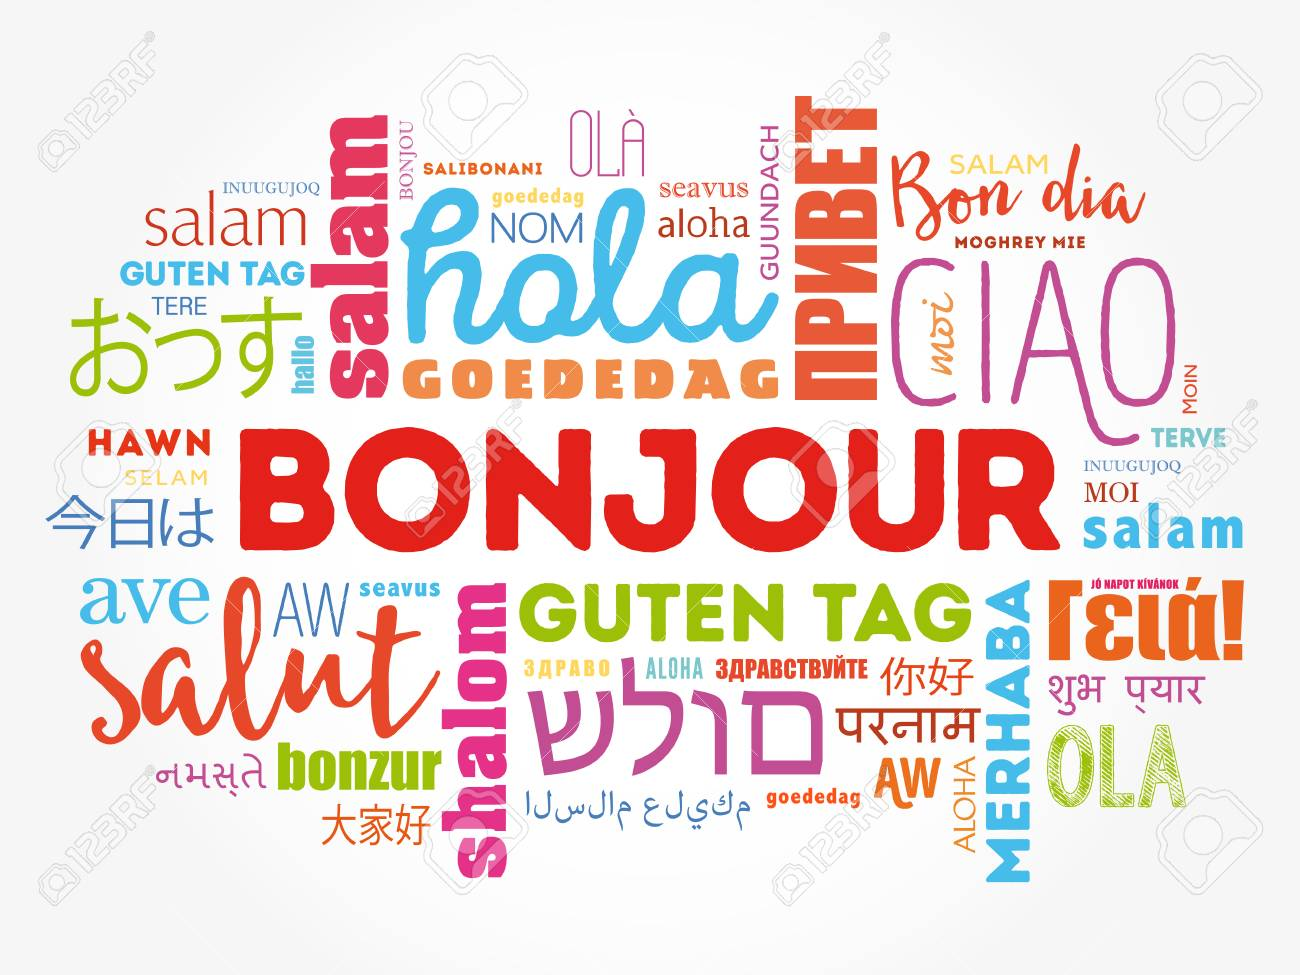 Bonjour hello greeting in french word cloud in different bonjour hello greeting in french word cloud in different languages of the world kristyandbryce Gallery